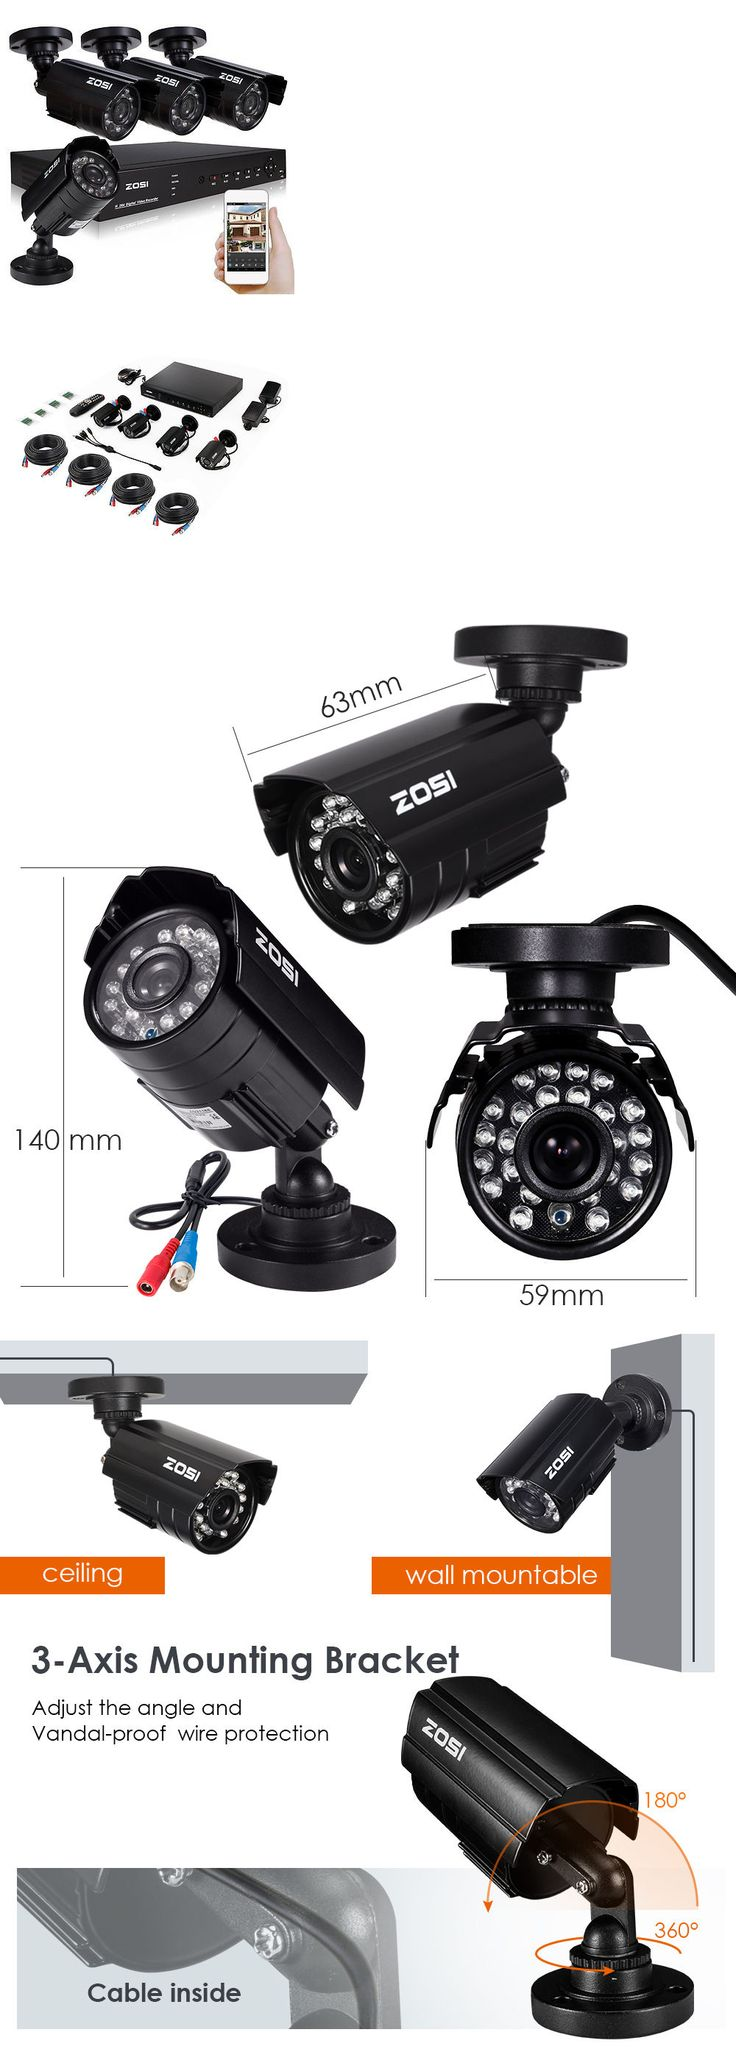 best 25 cctv security systems ideas on pinterest cctv security How To Wire A Security Camera System surveillance security systems zosi 4 channel 720p dvr 1500tvl outdoor ir home cctv security camera how to wire a security camera system